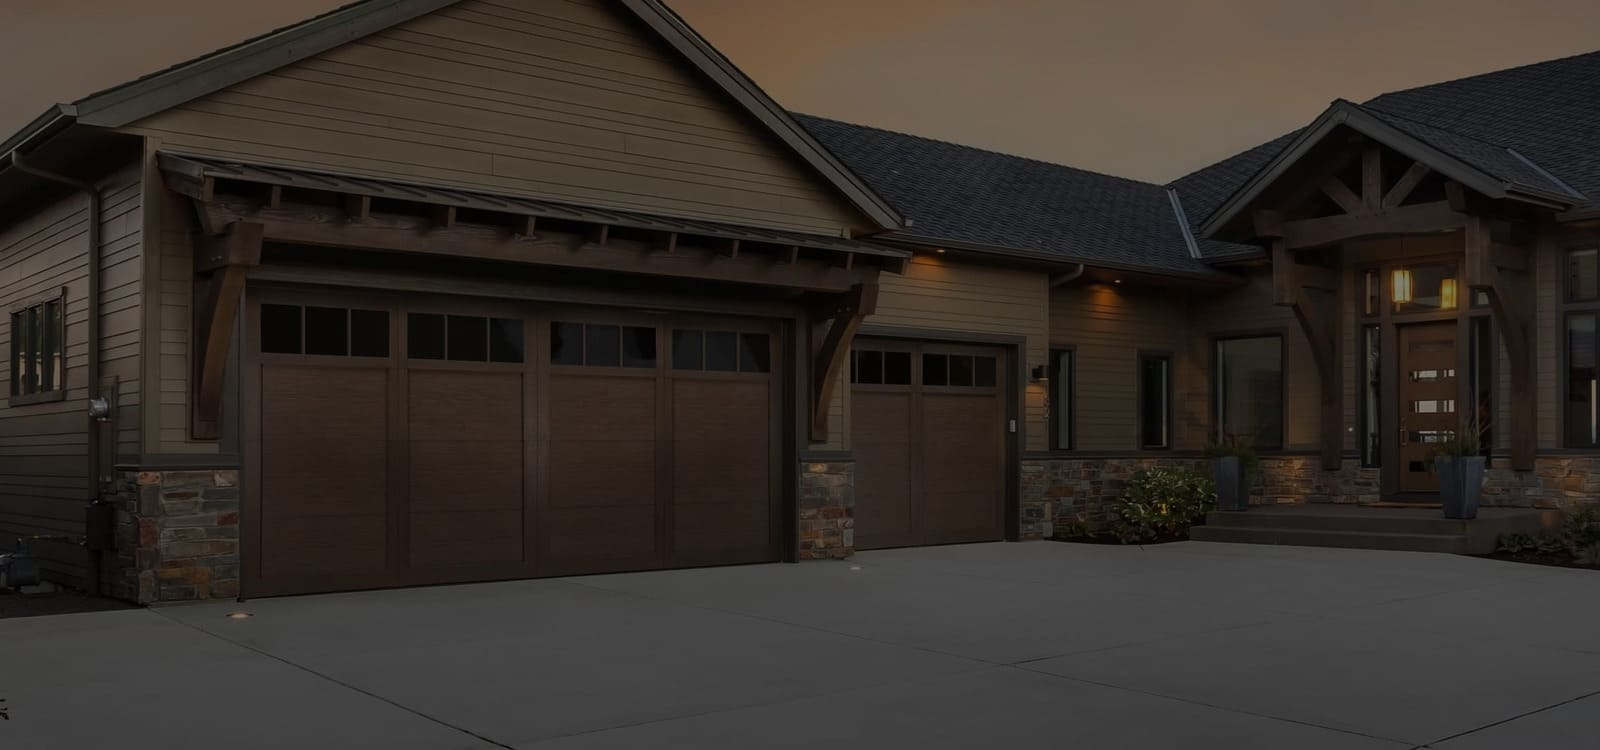 Garage Door Repair Spanish Fork Ut Same Day Repair